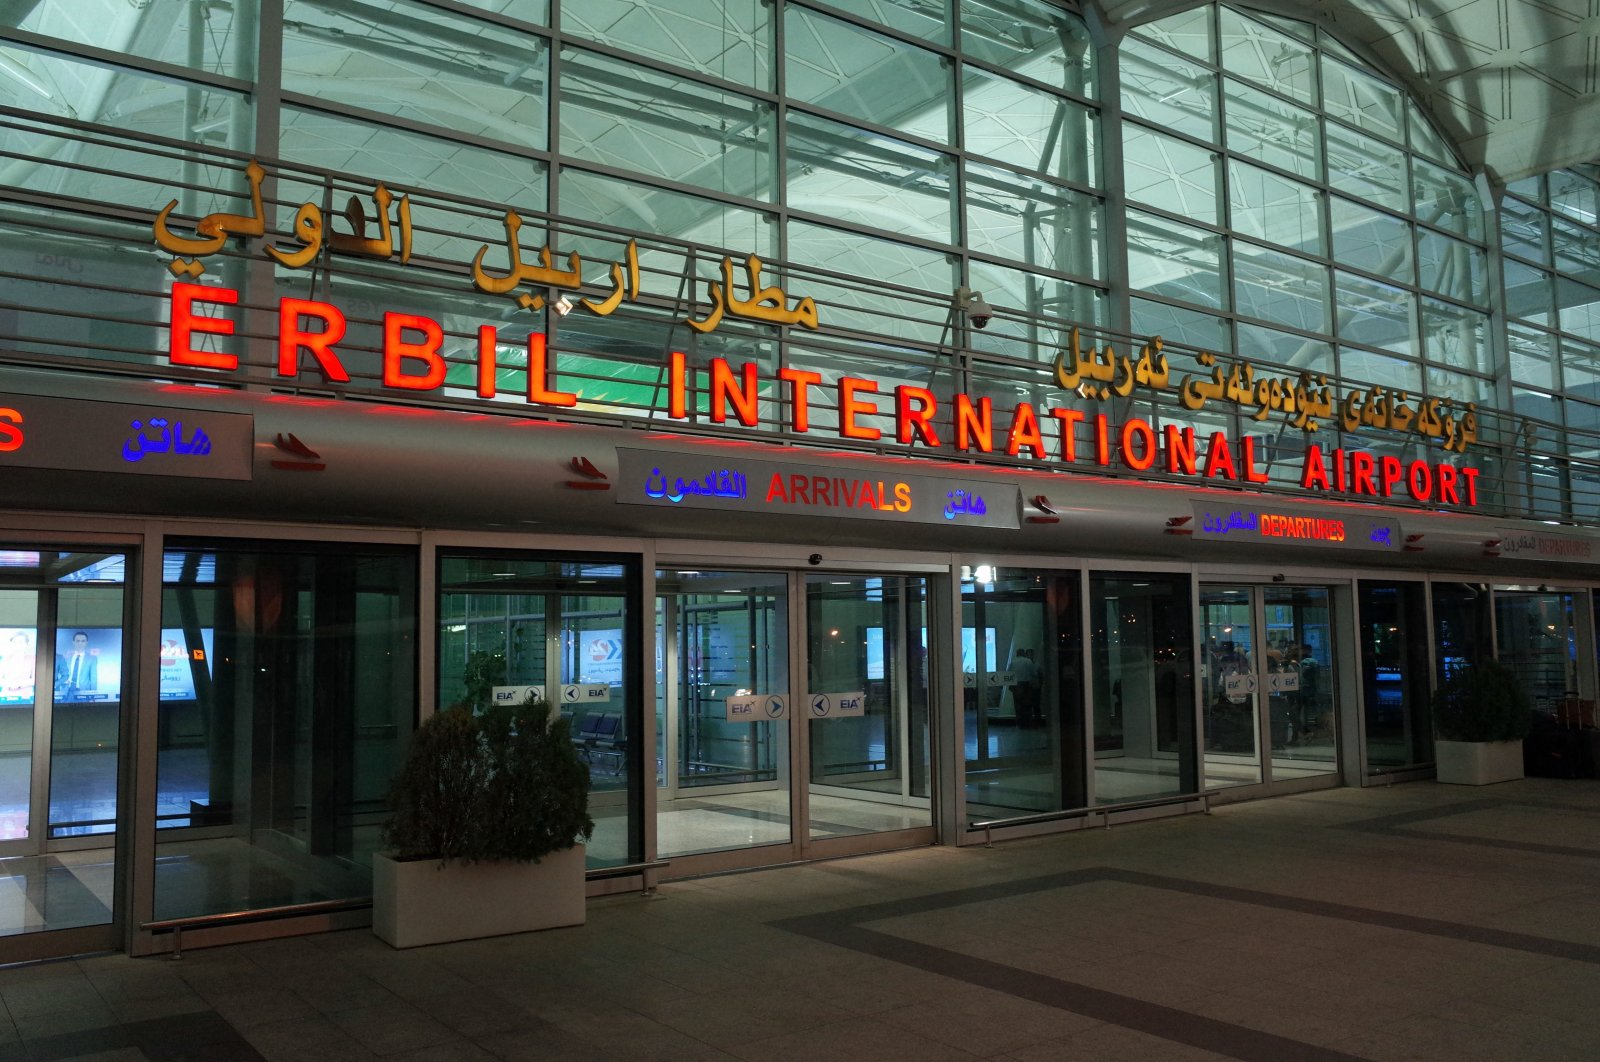 The entrance of Irbil Airport is seen in this file photo taken in Iraq on Sept. 25, 2017. (Reuters File Photo)